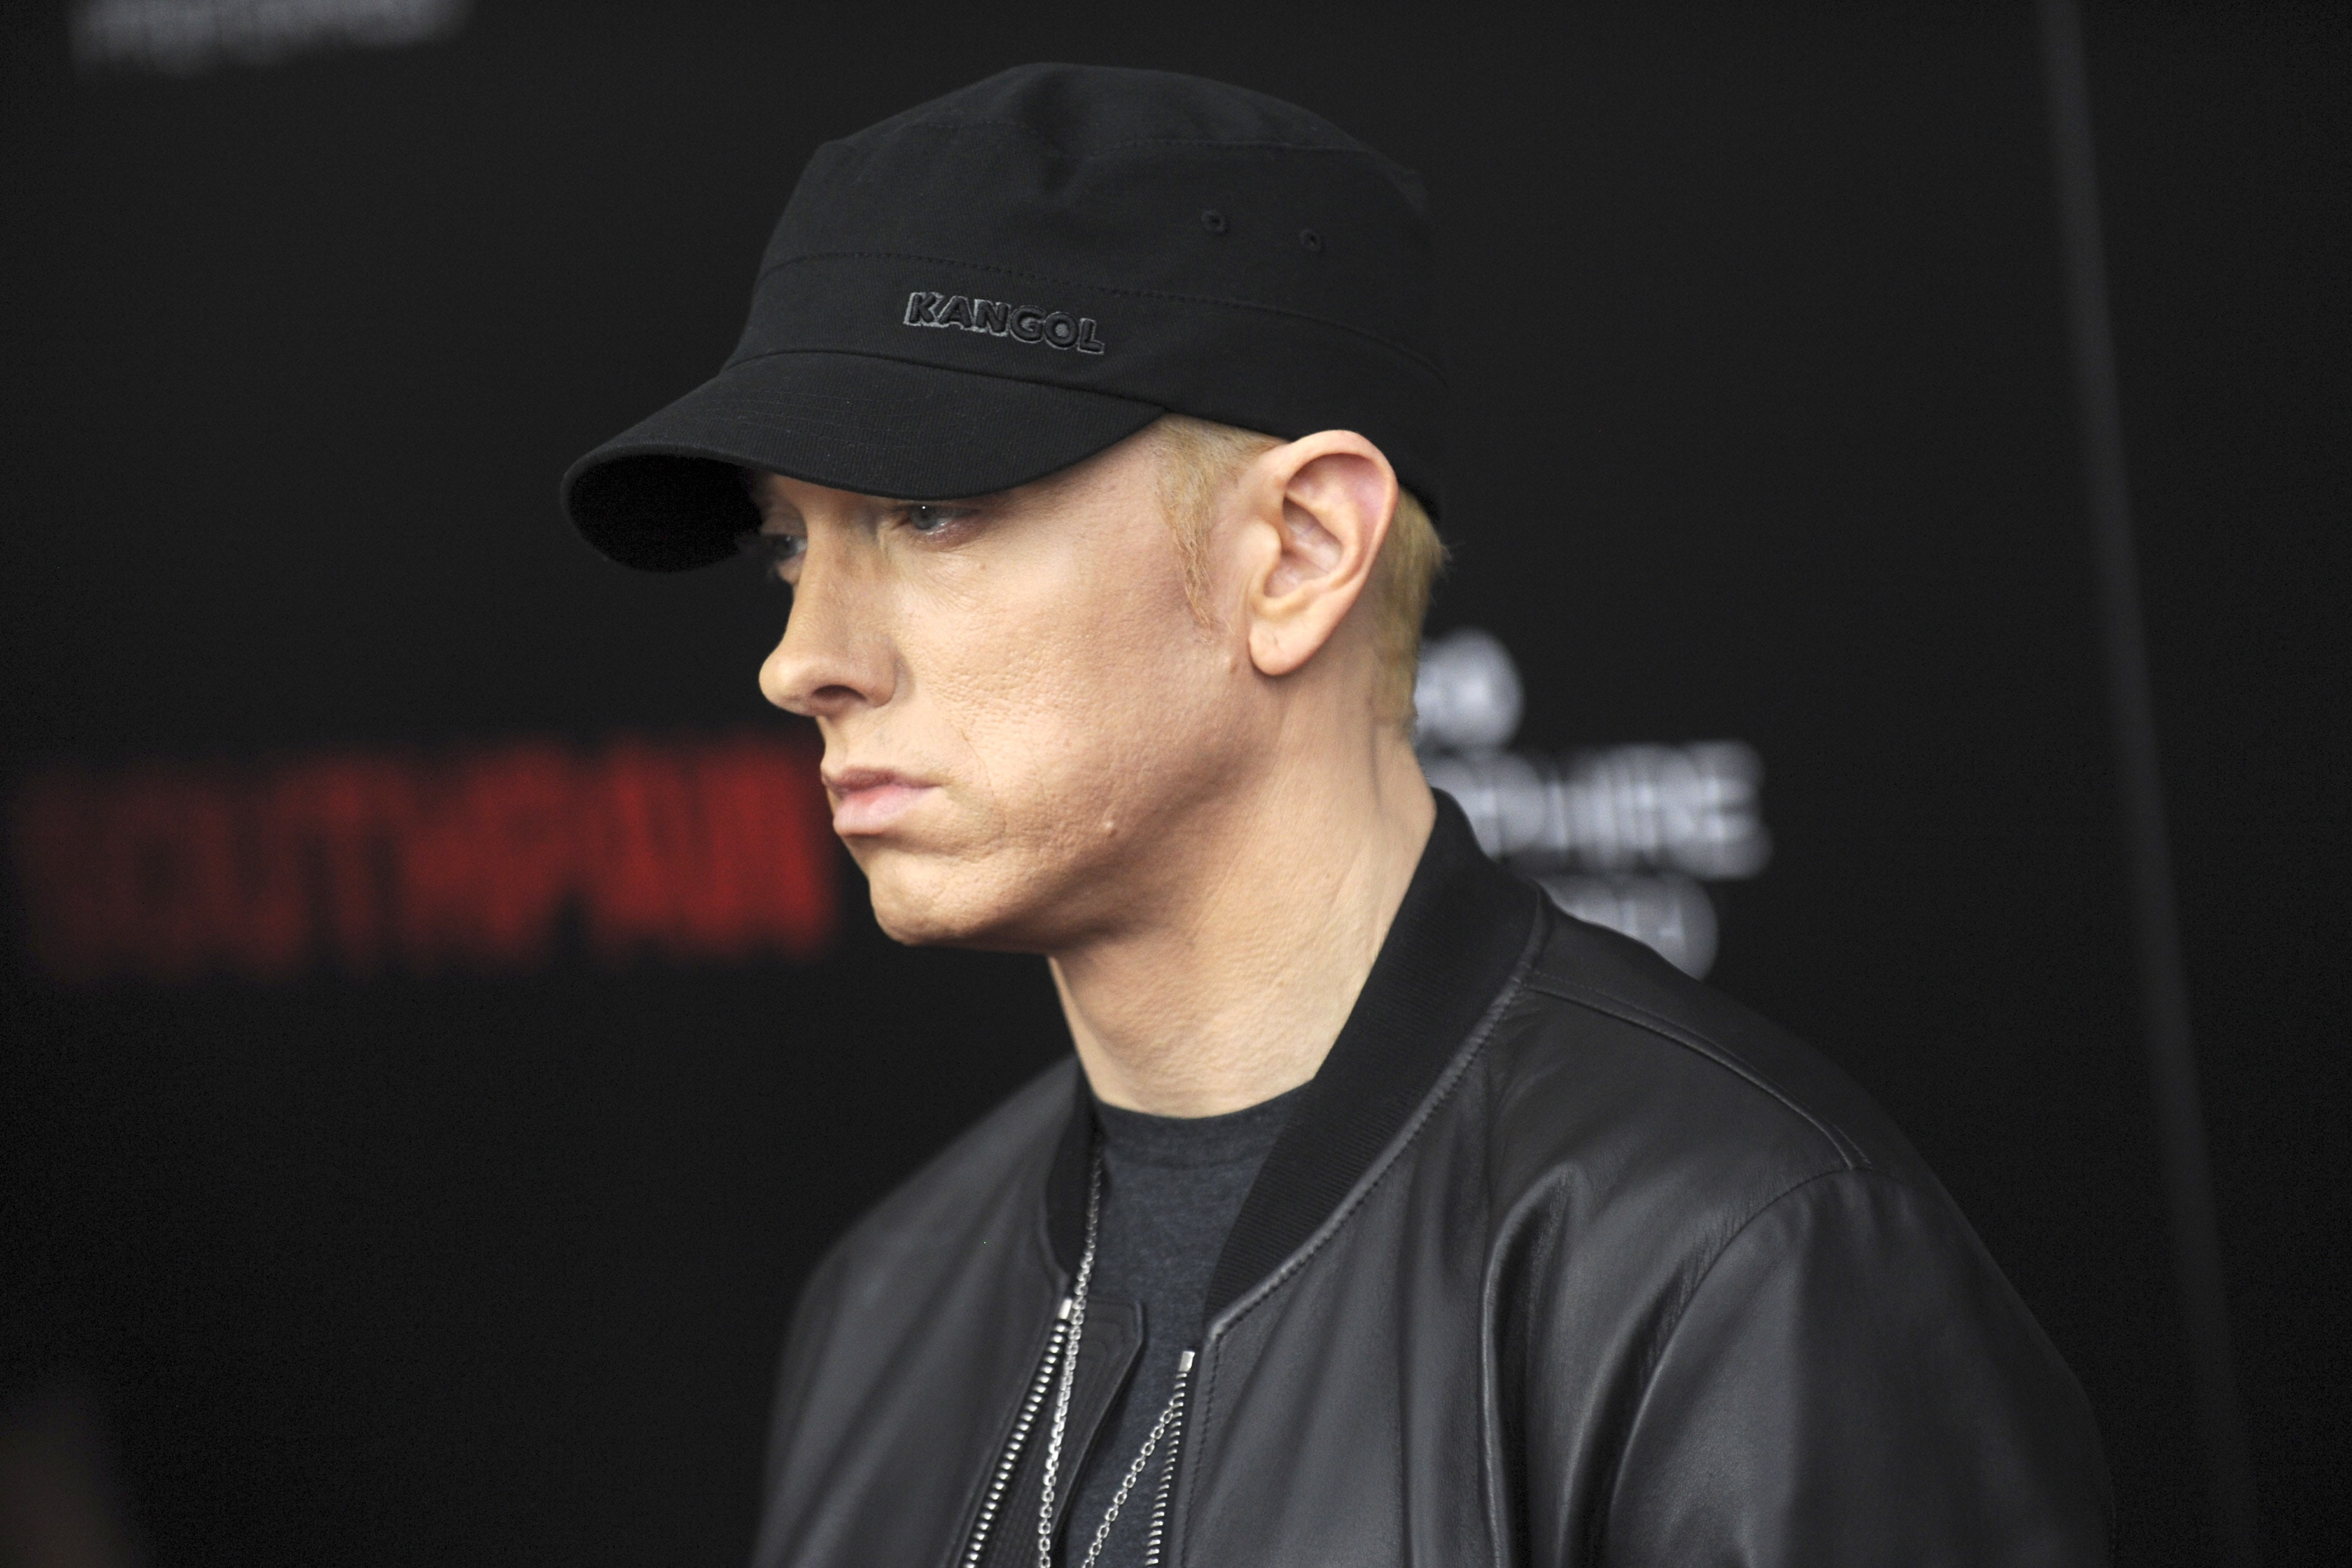 5c1c06fa1aecc Eminem opened up a pop-up store and restaurant called